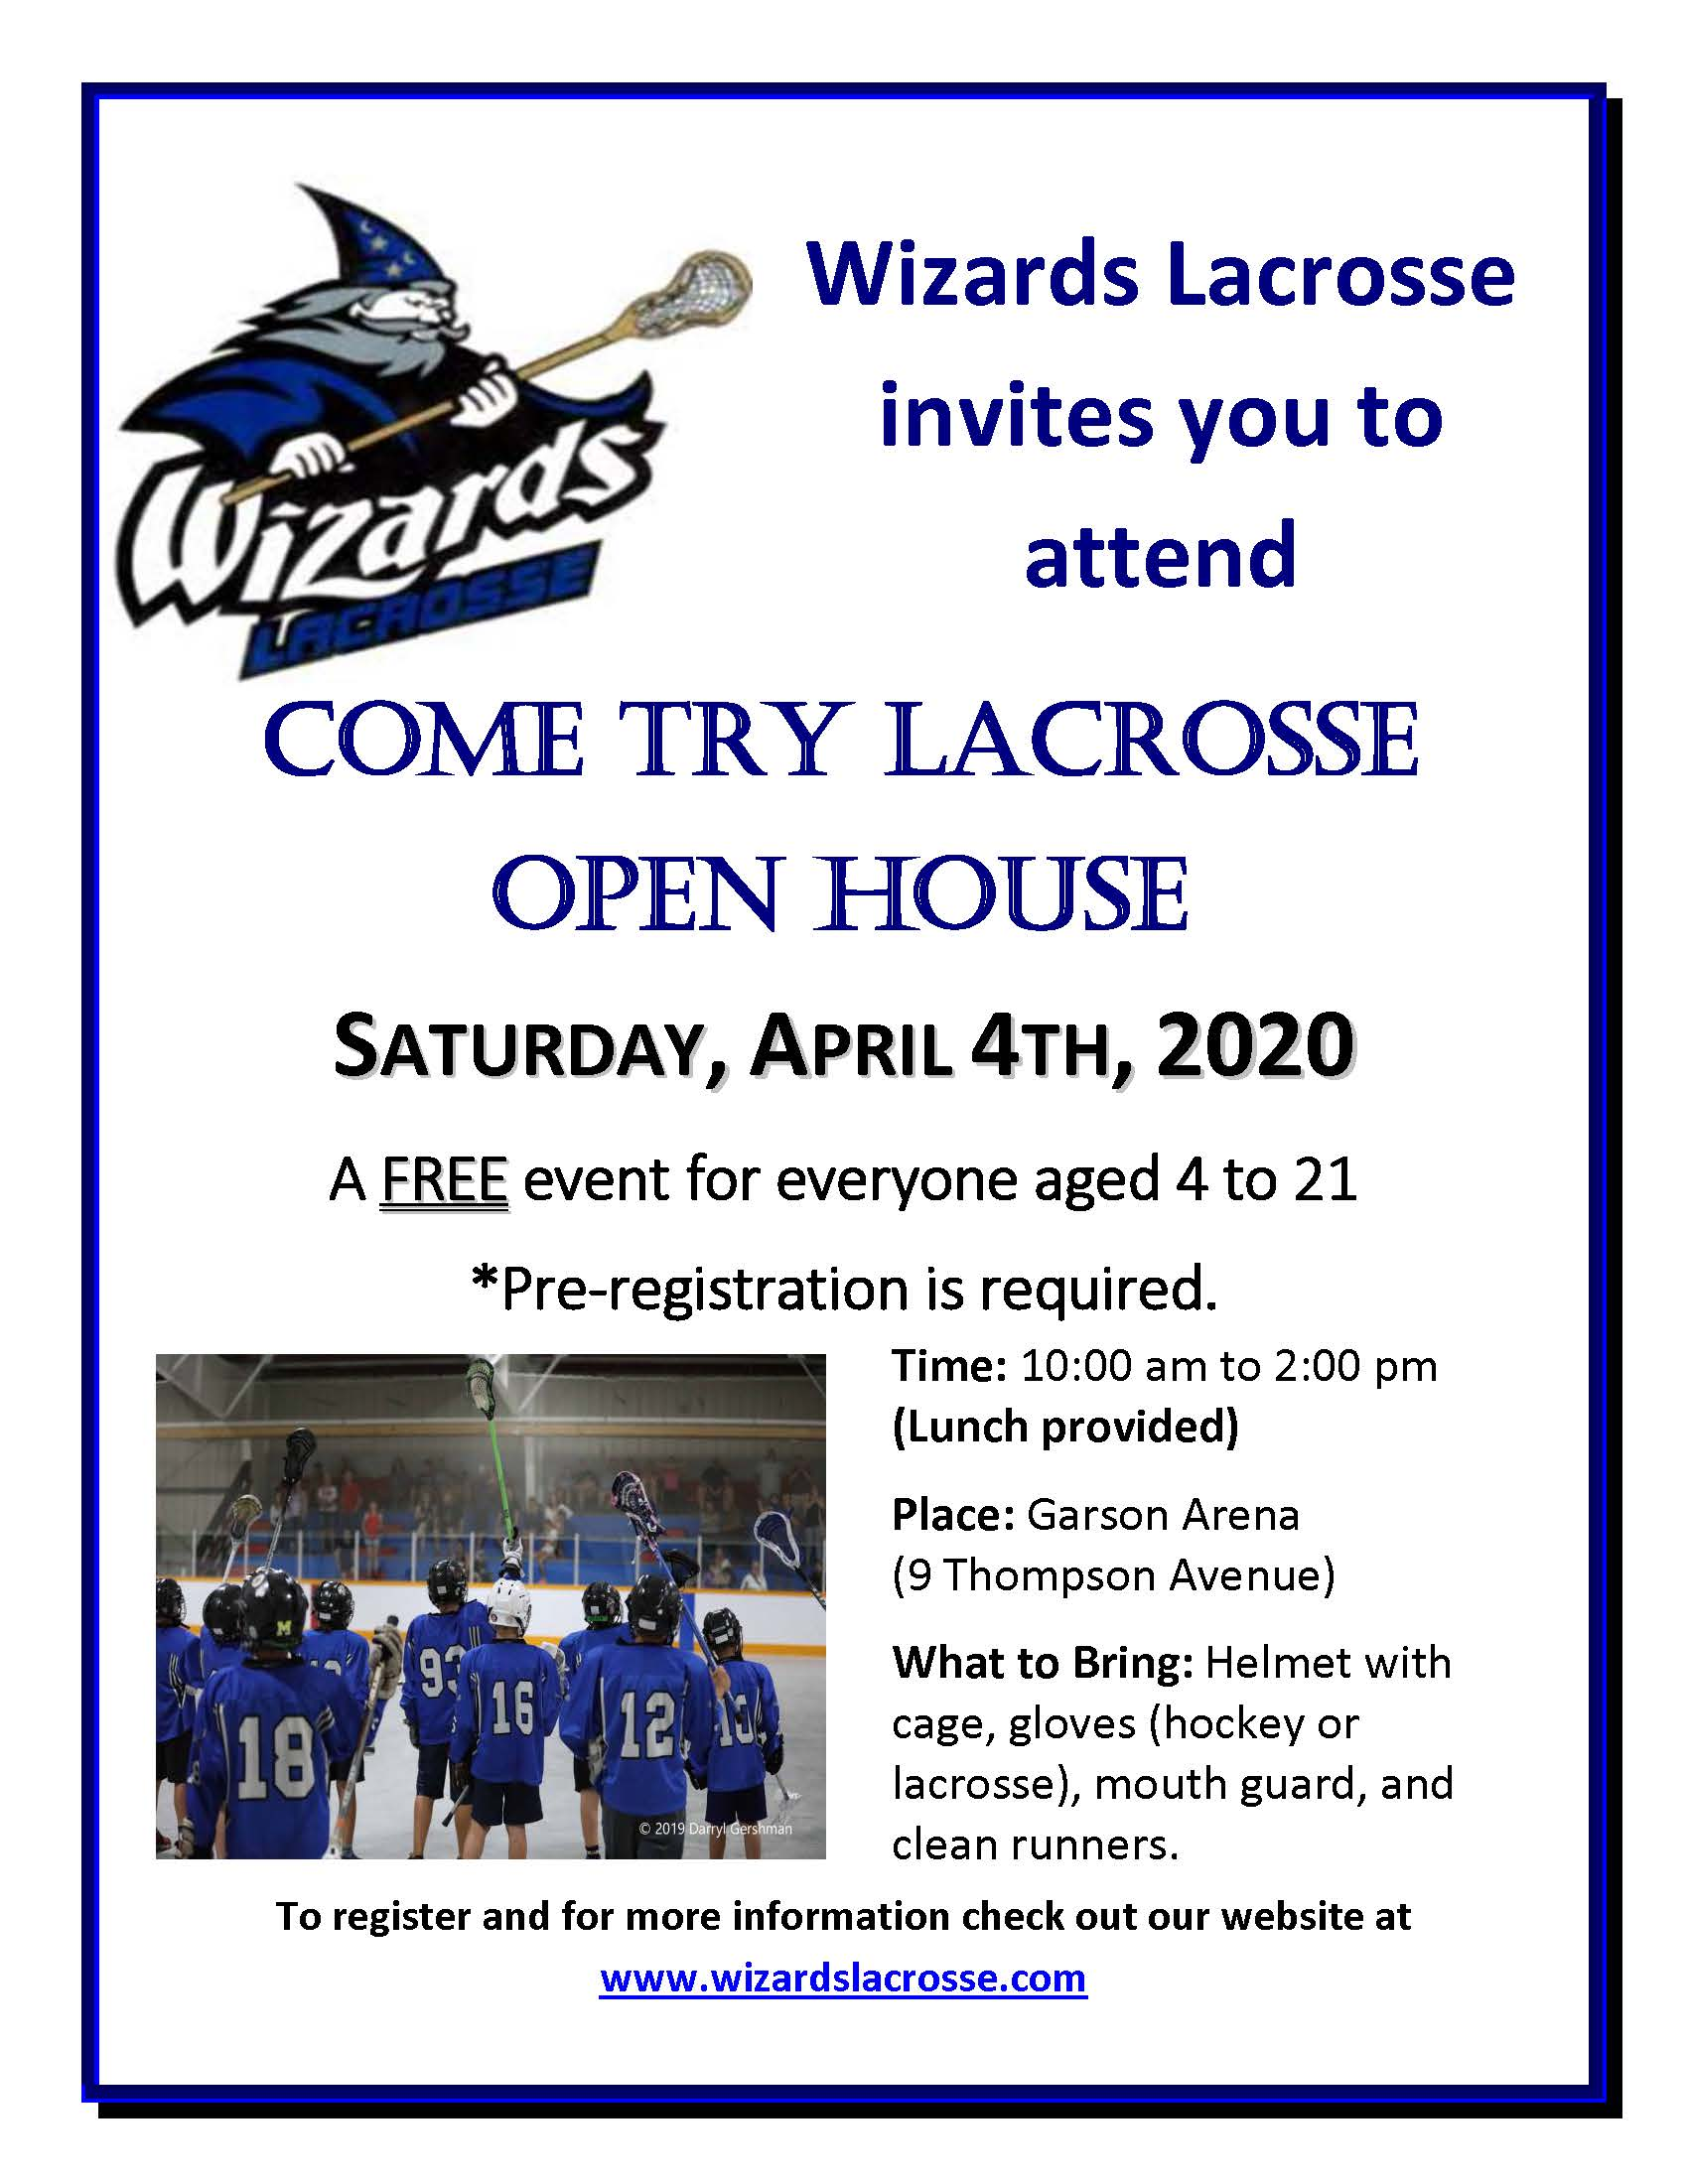 Open House Ad - 2020